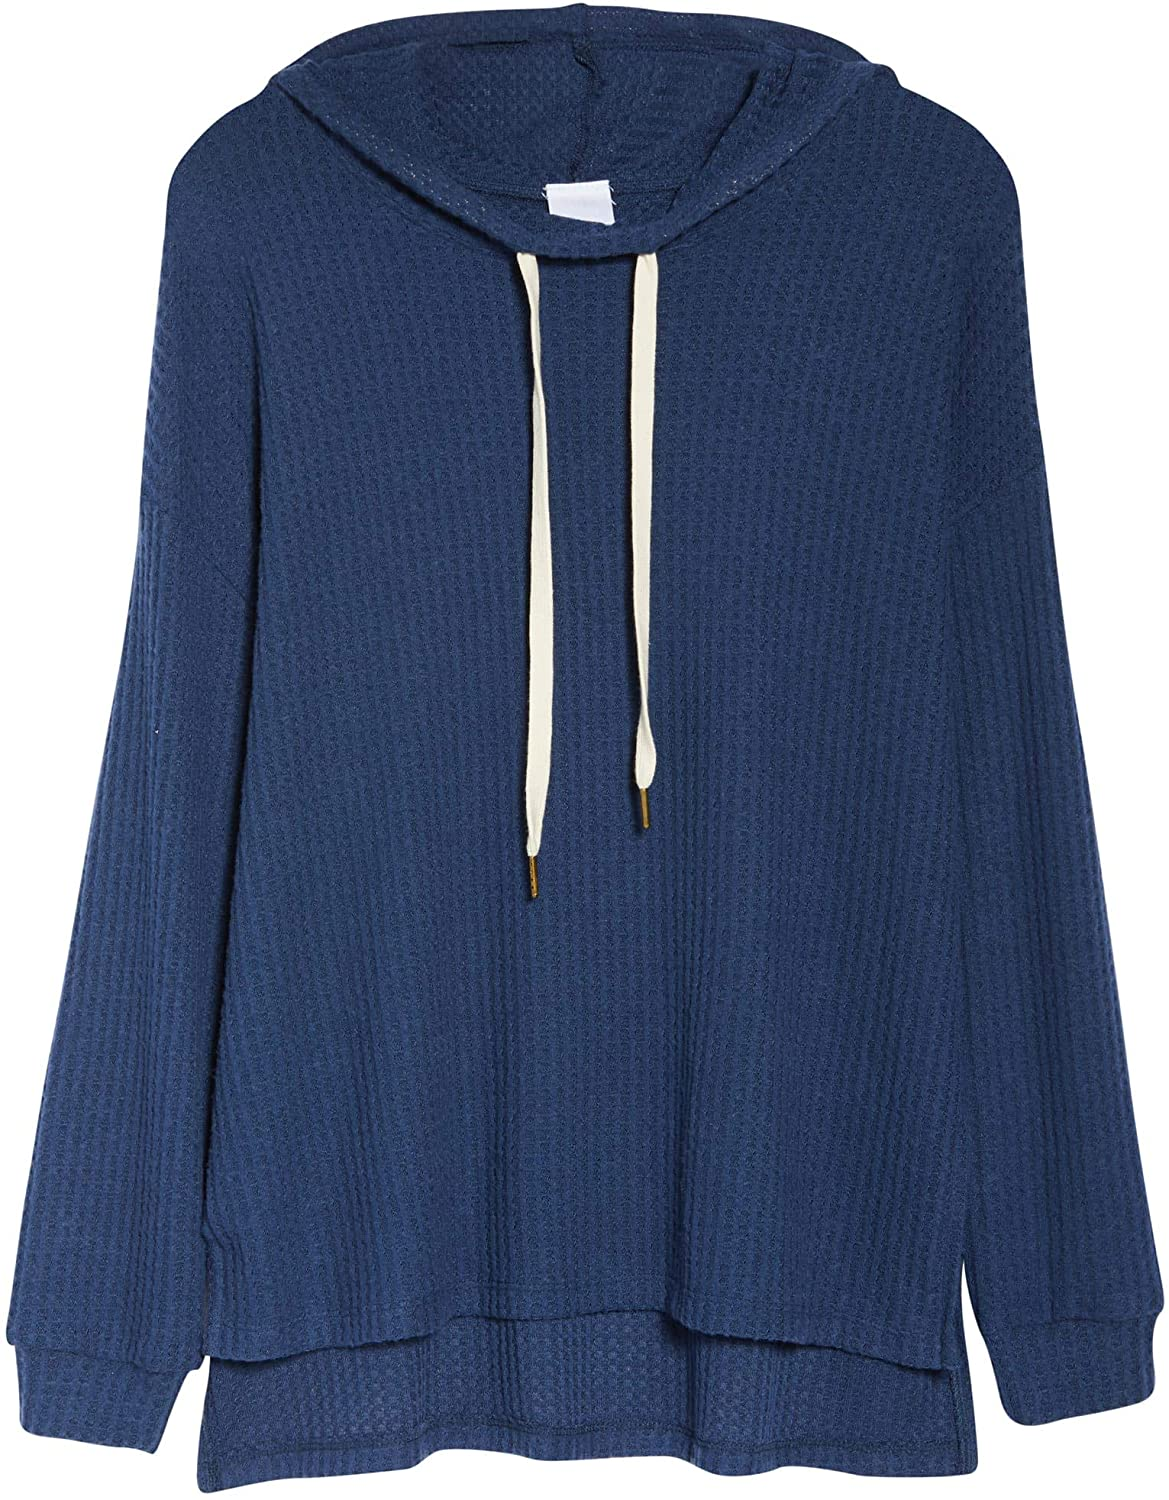 Project Social T Women's Waffle Knit Hooded Pullover - Size X-Small | Blue